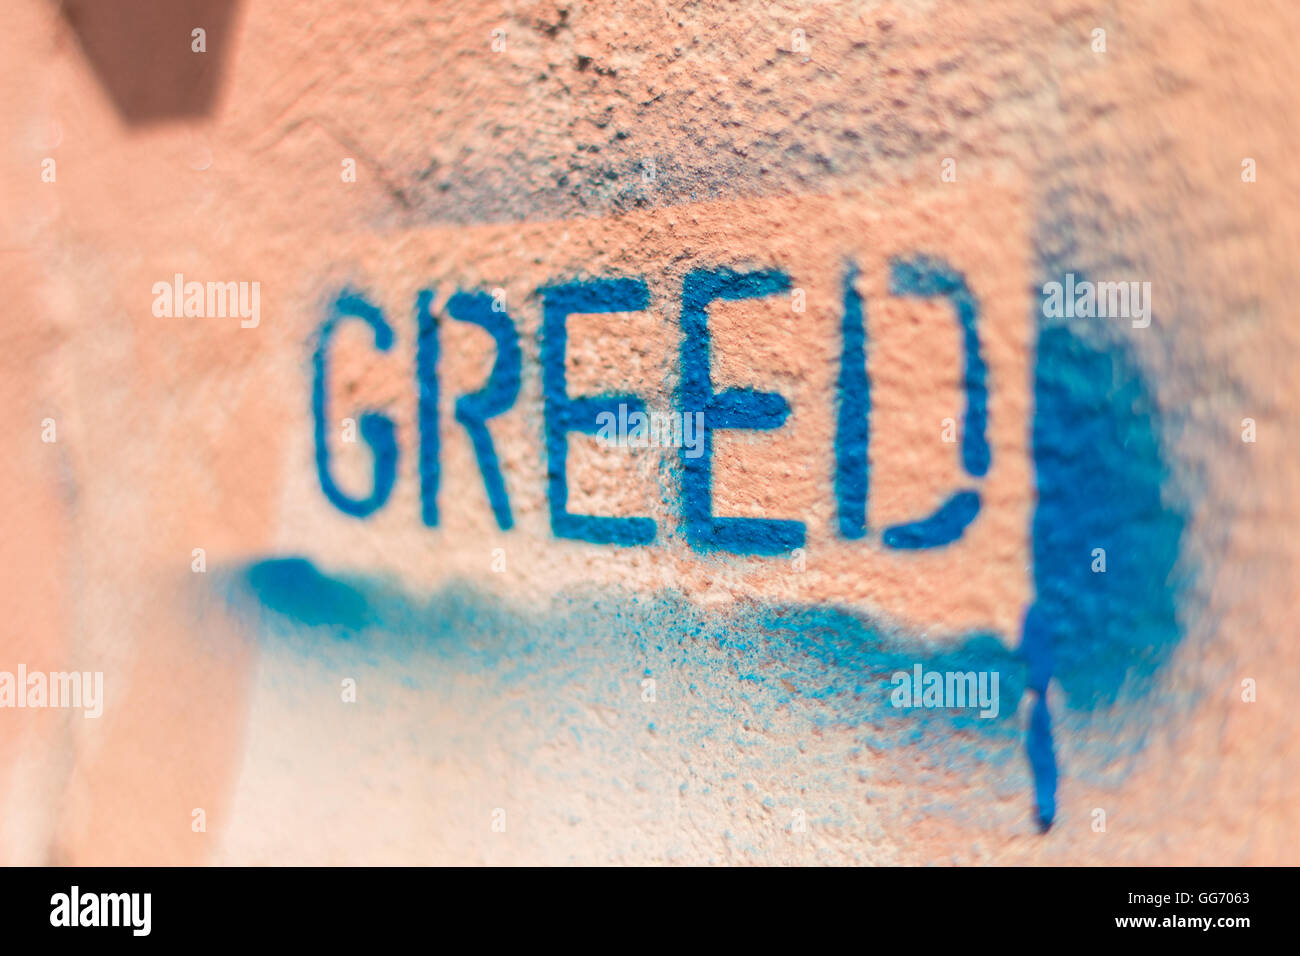 the word Greed - Stock Image